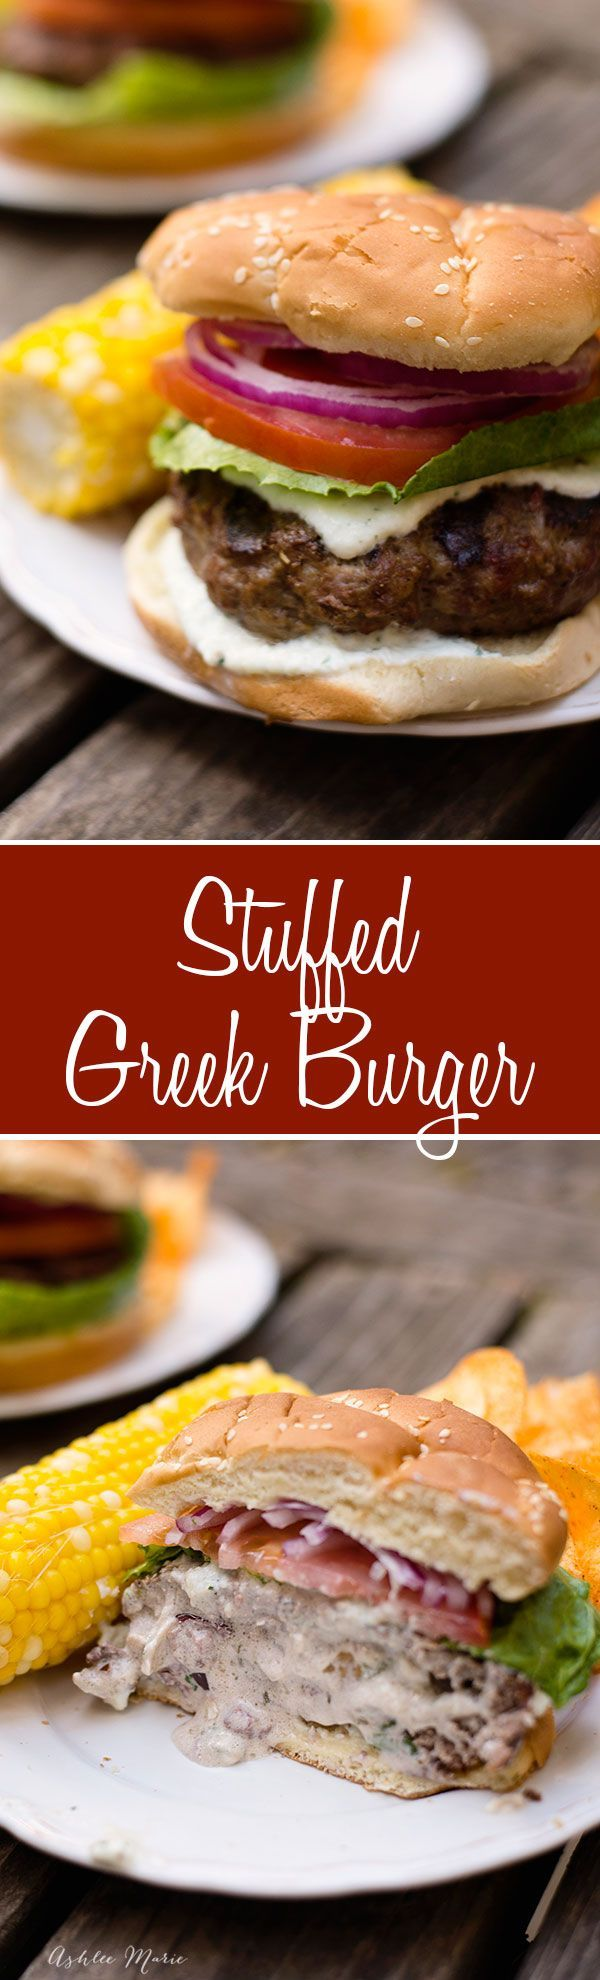 this stuffed greek burger is made with lamb, beef and pork and filled with goat cheese, feta grilled onions and greek olives.  Top with tzatziki sauce, tomatoes and red onions for a great greek flavor.